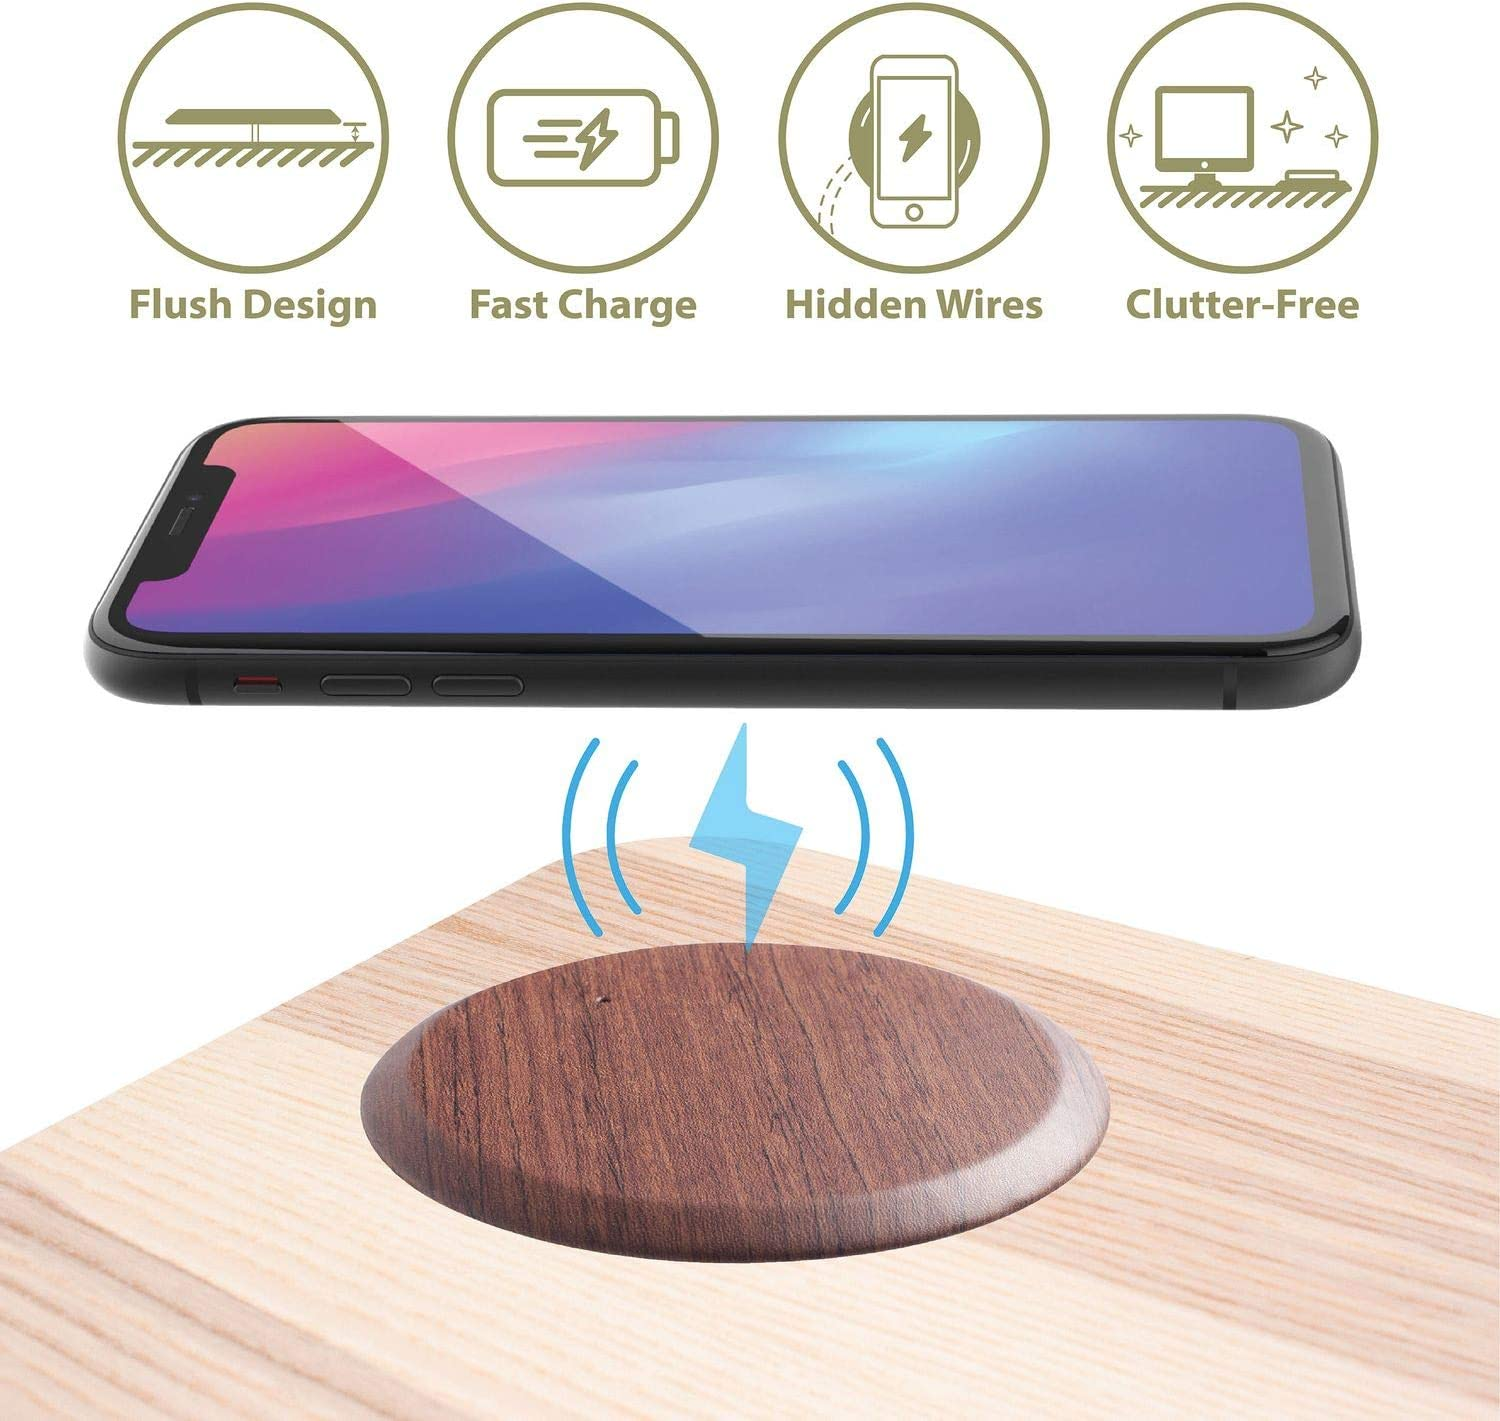 Cobble Pro Embedded 10W Wireless Charger with Hidden Cable [Integrate Into Desk] [Ultra Slim] [Cable Free Desktop] [No Core Drill Needed] [Easy to Install] [Tools Included] Wood Pattern PU